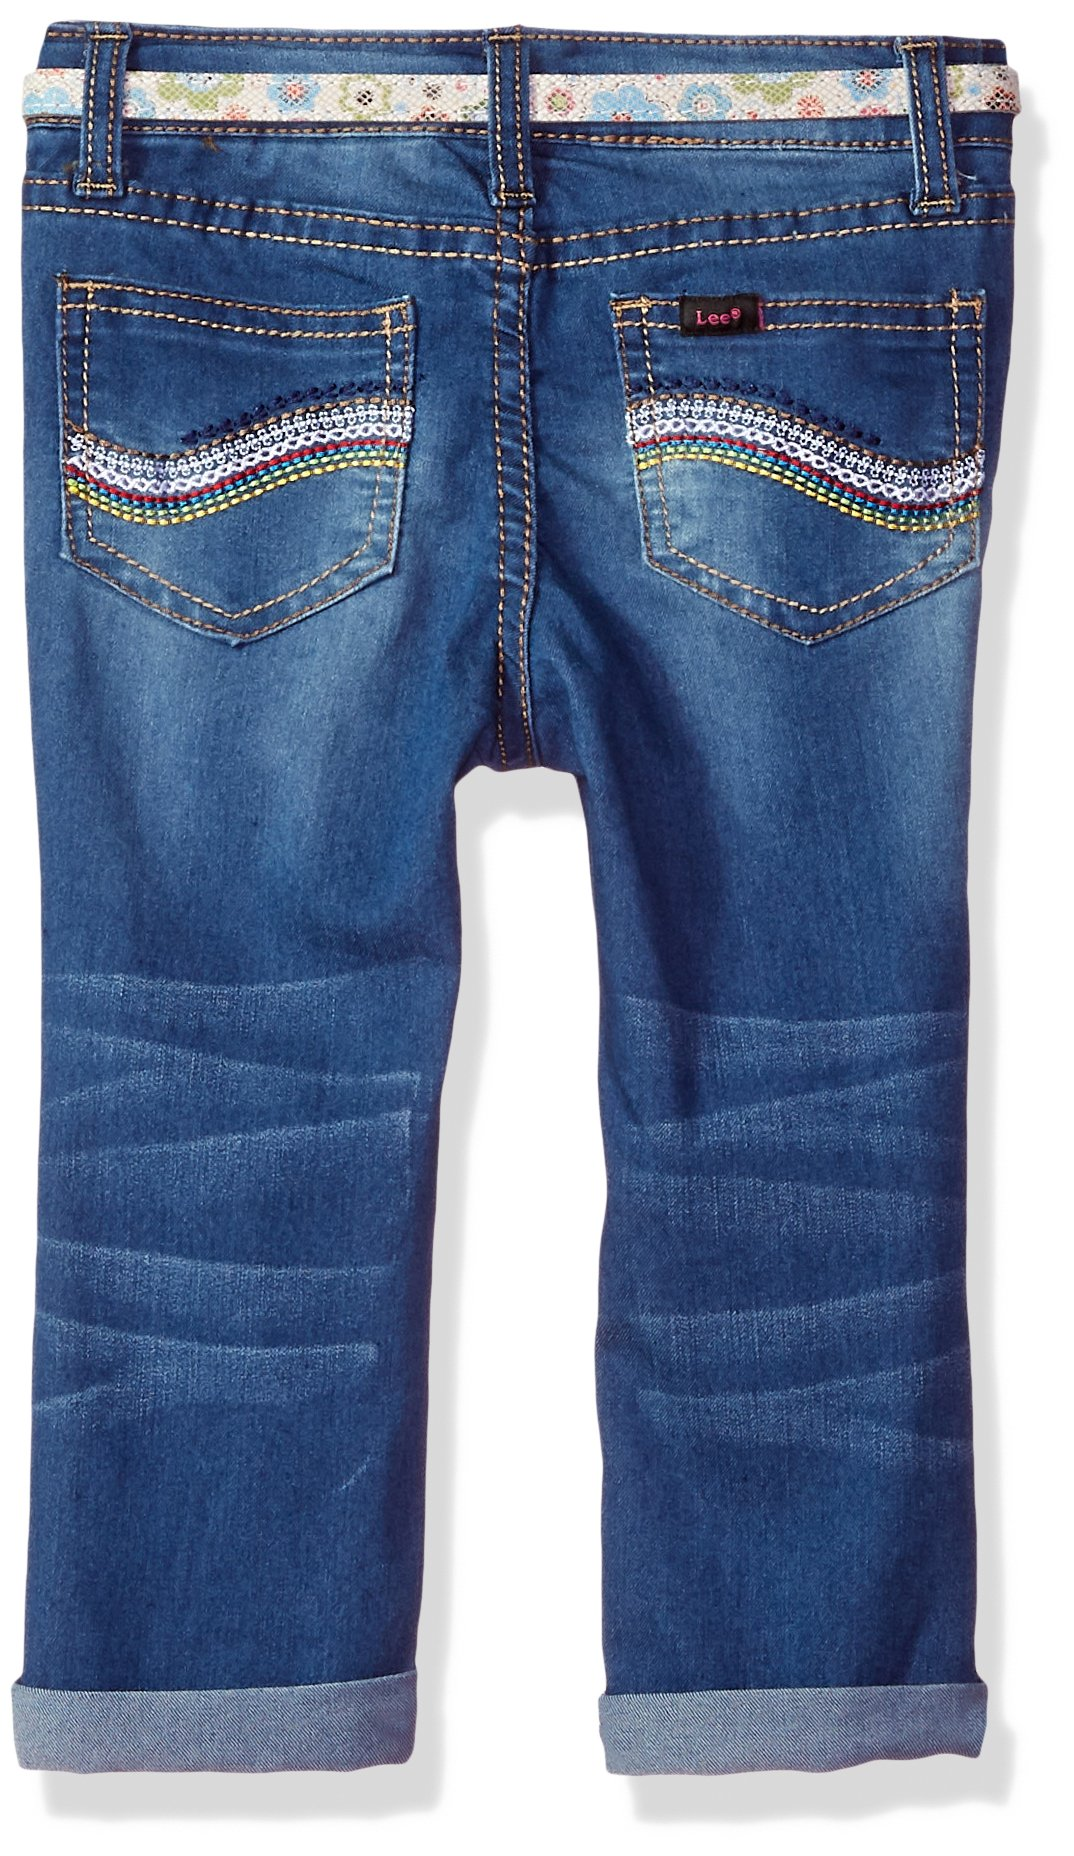 LEE Toddler Girls' Belted Skinny Jean, Shaken Blue, 4T by LEE (Image #2)